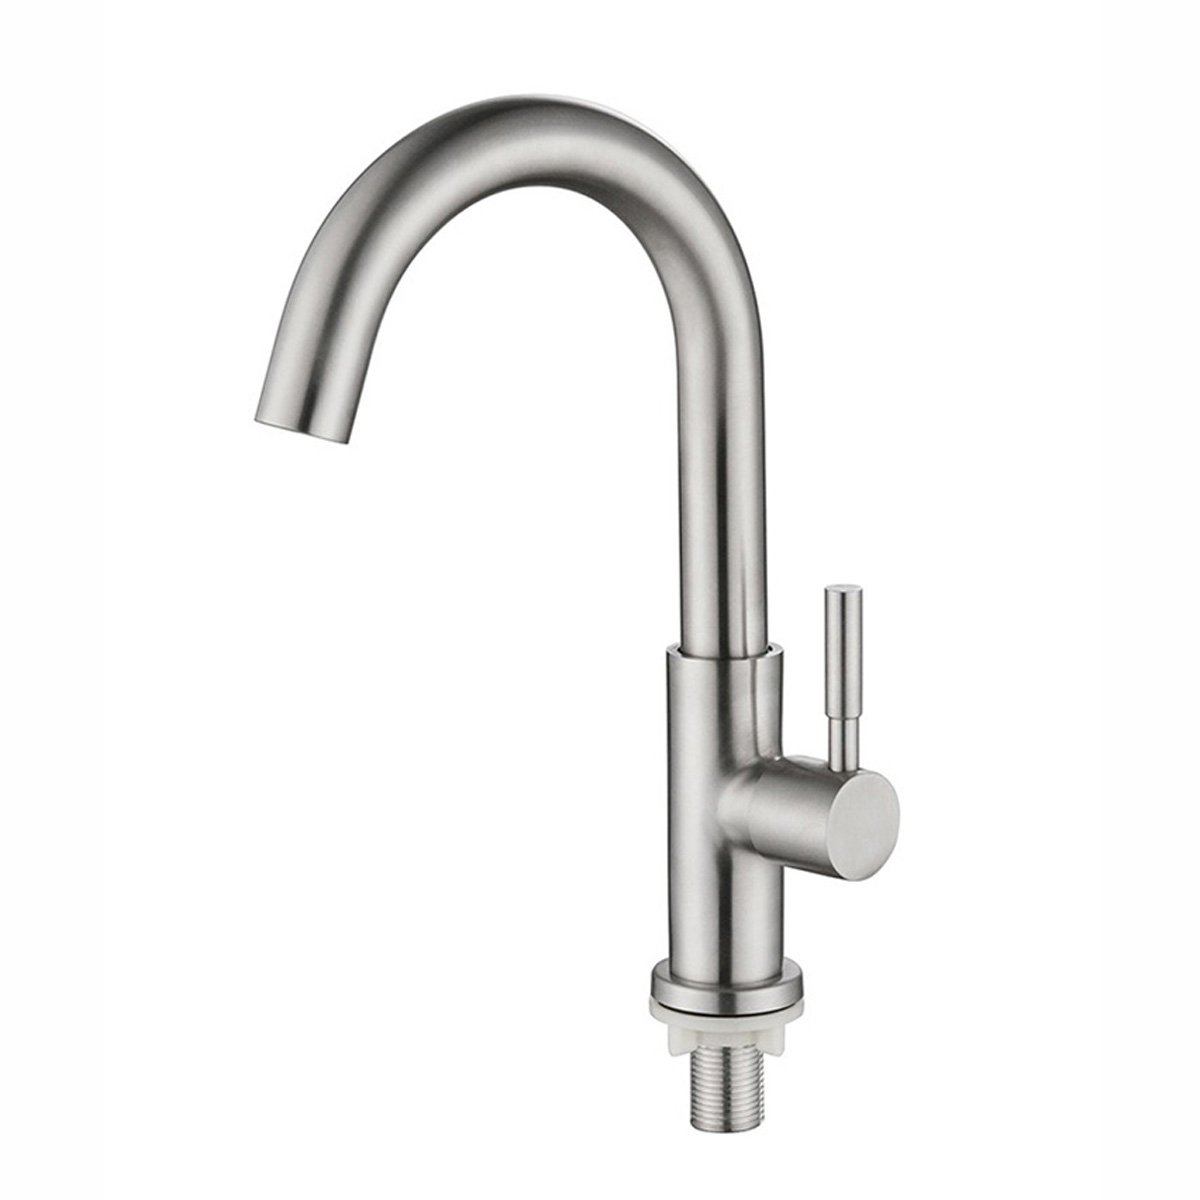 Brushed Nickel Kitchen Sink Faucet Single Cold Water Single Hole Bar Bathroom Laundry Room Faucets 304 Stainless Steel SSDLQ003-1